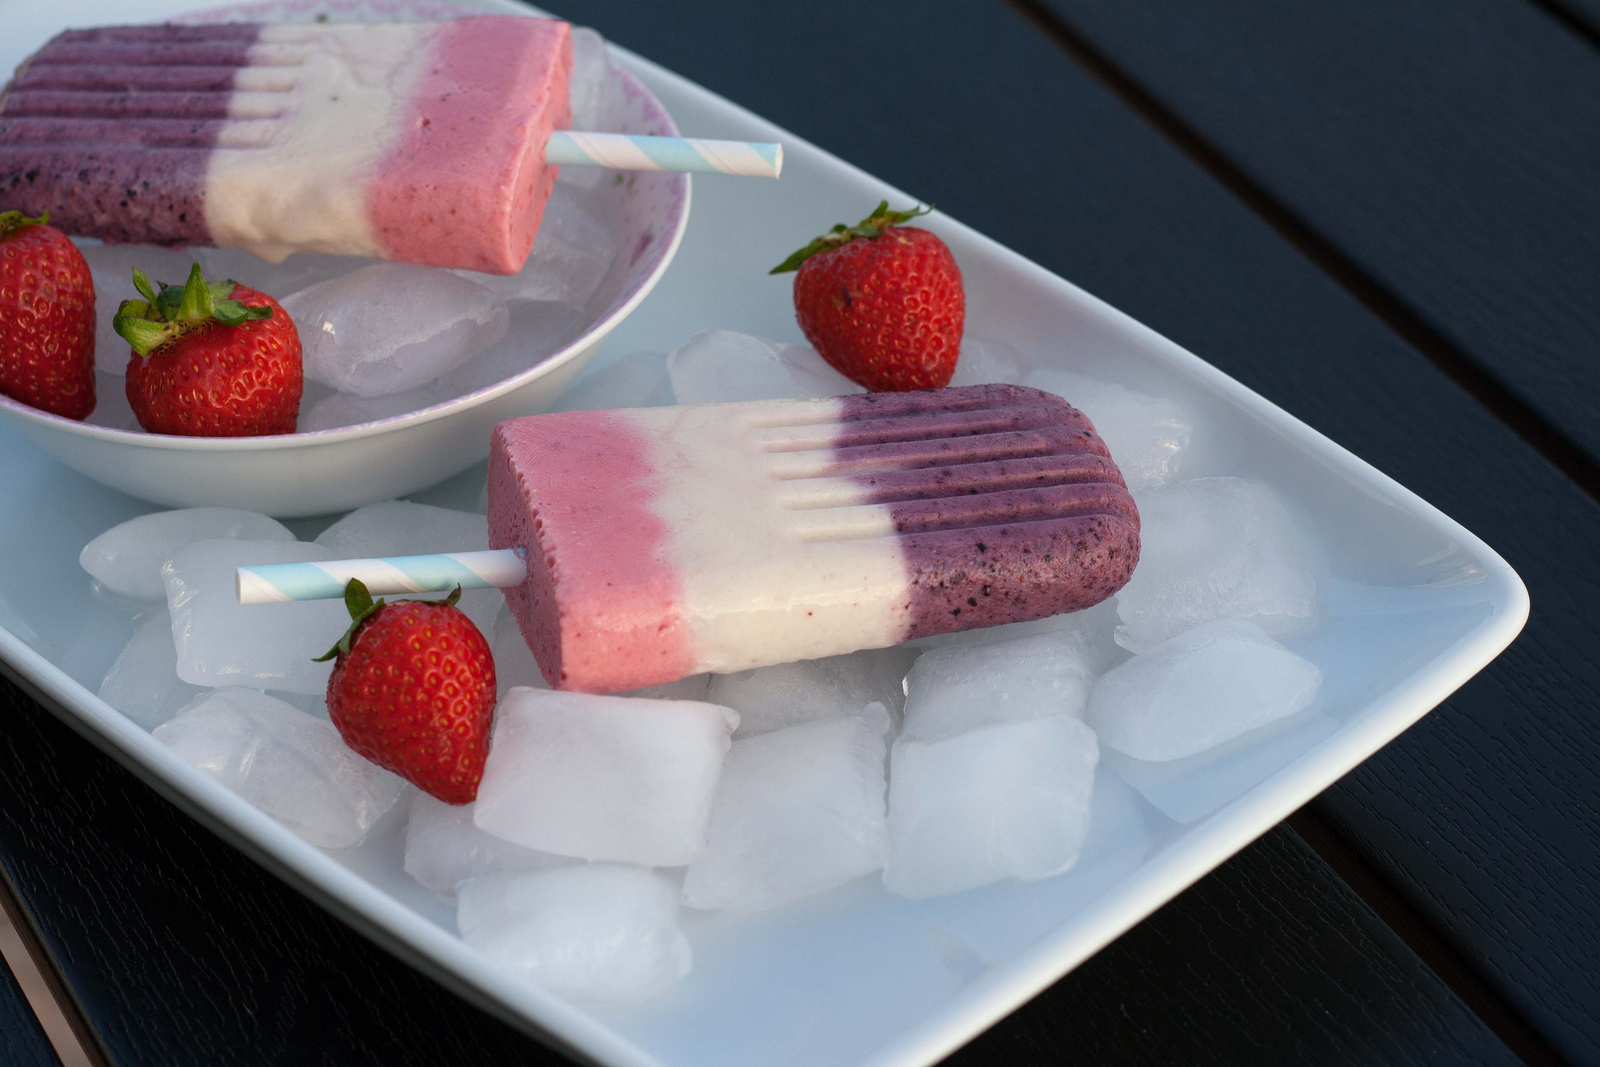 Popsicle with Greek Yogurt and Berries